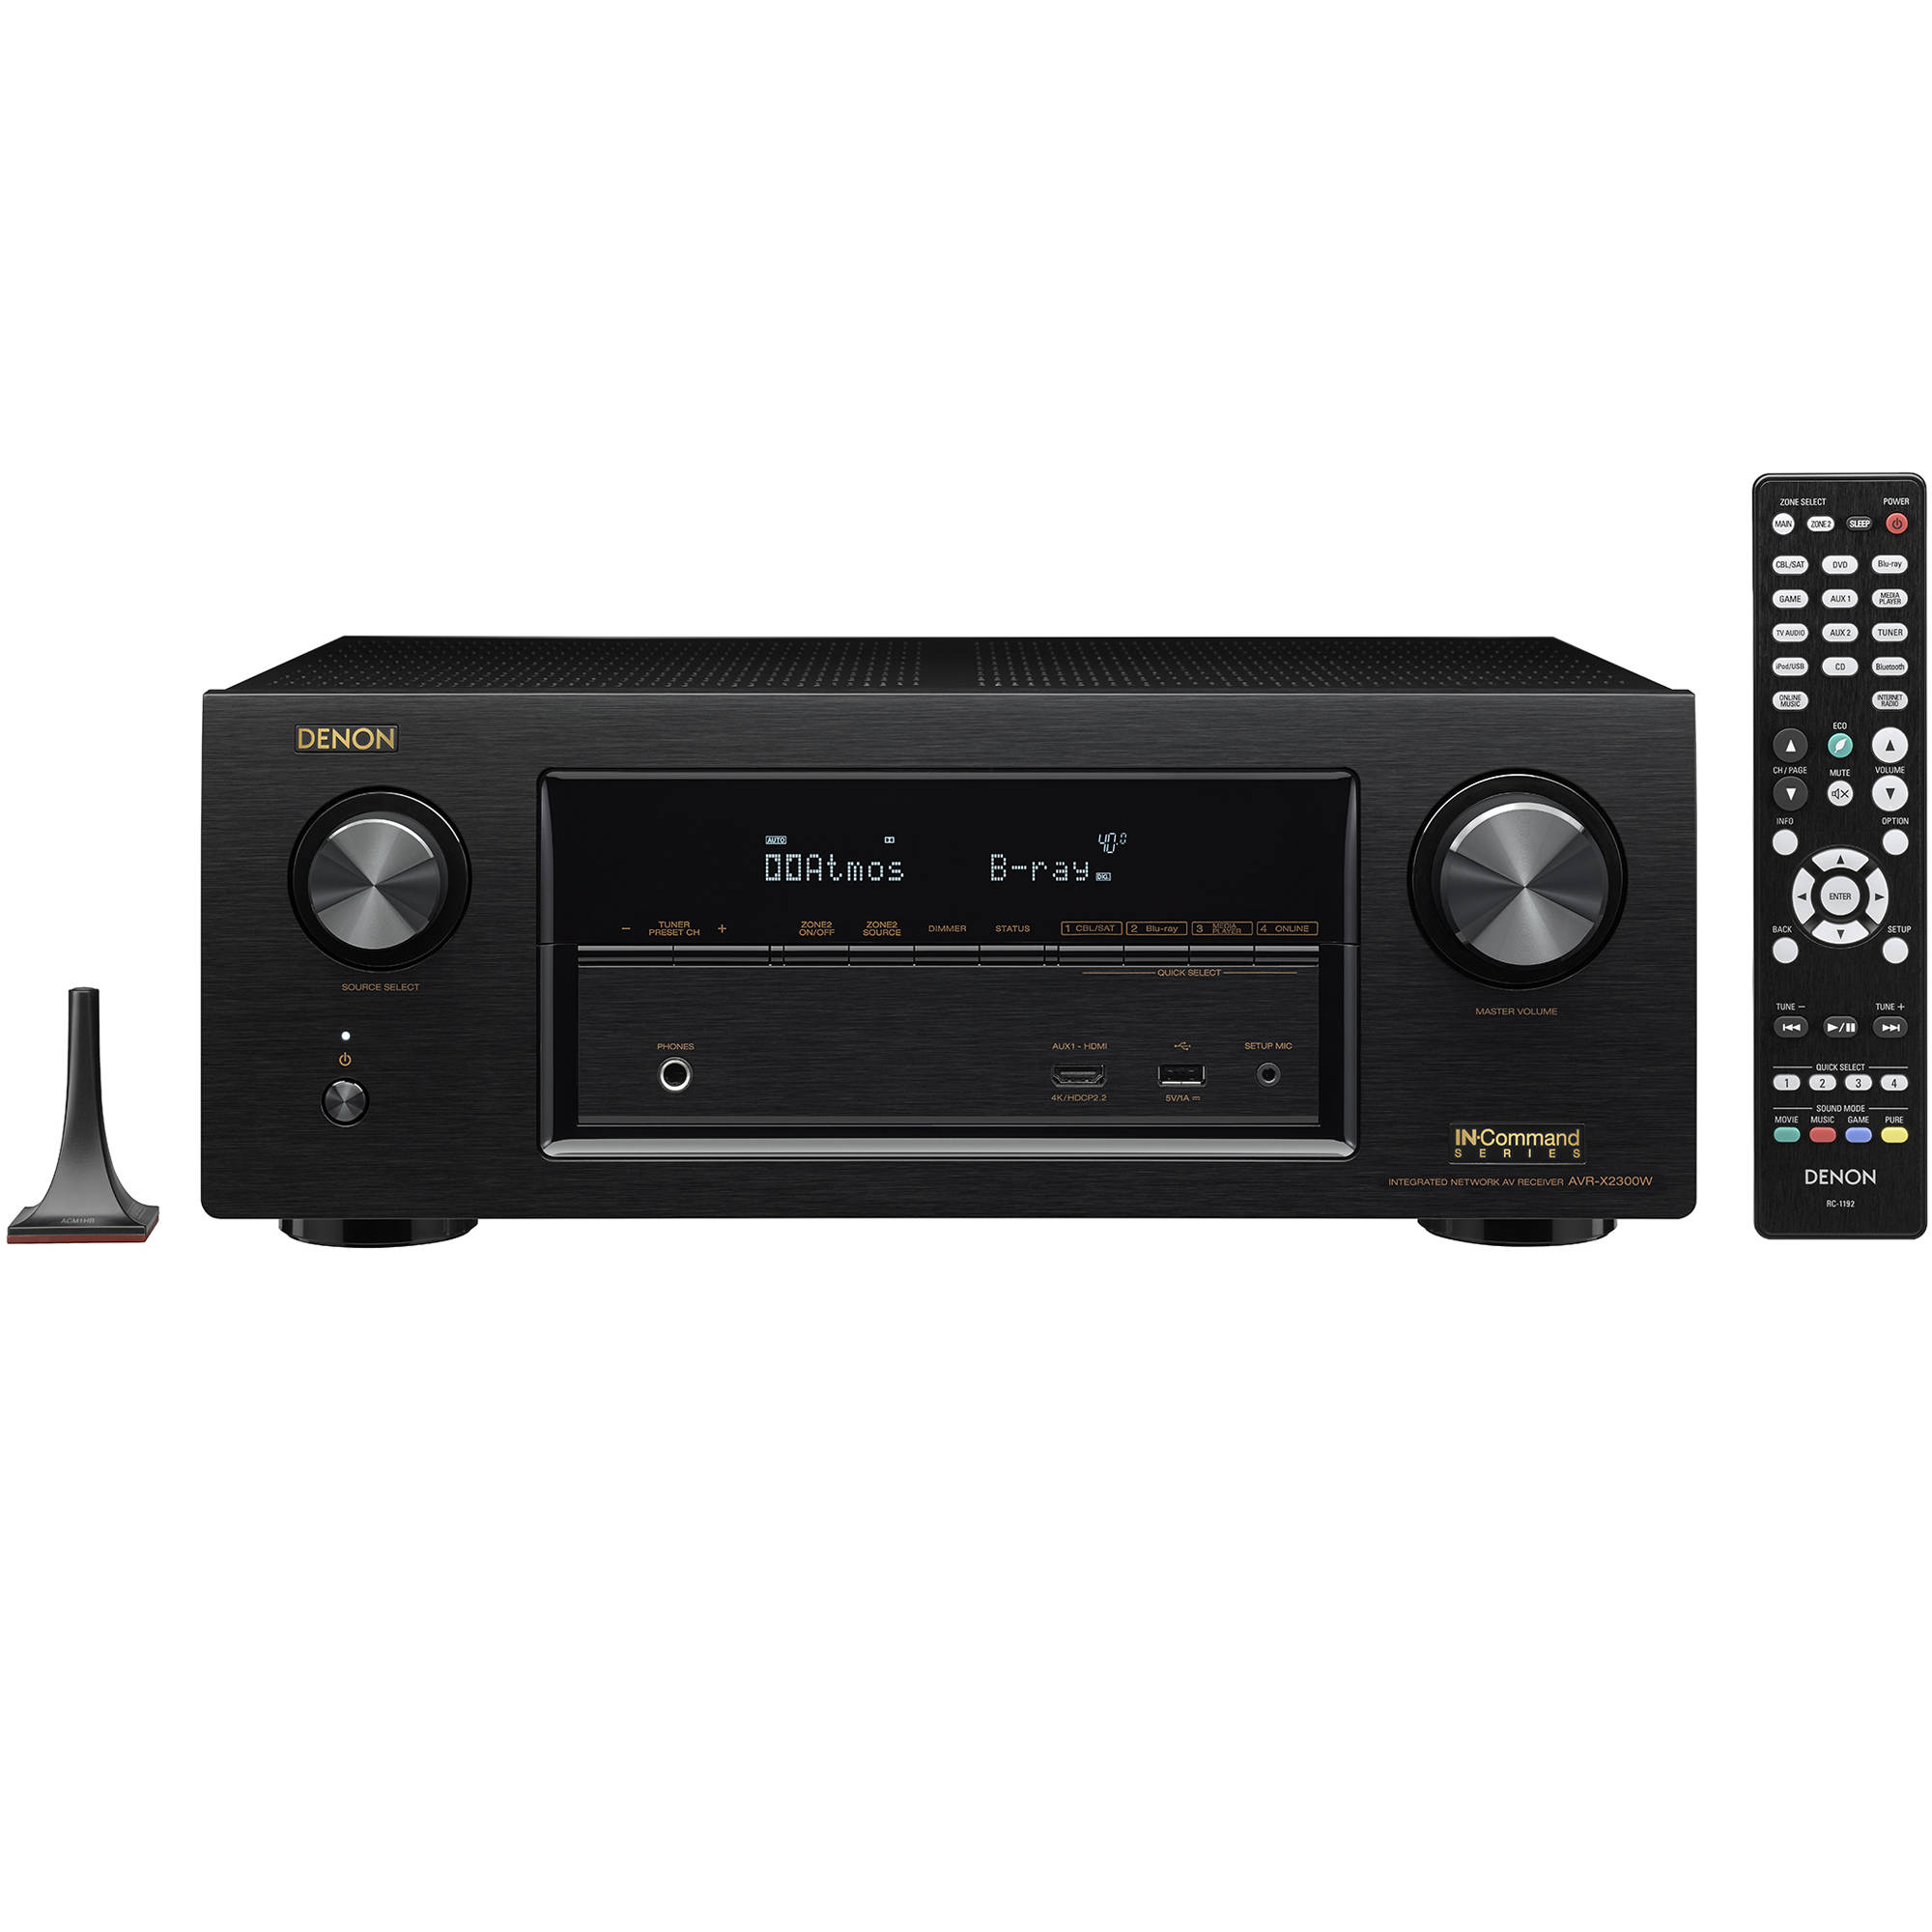 Denon AVR-X2300W 7 2-Channel Network A/V Receiver